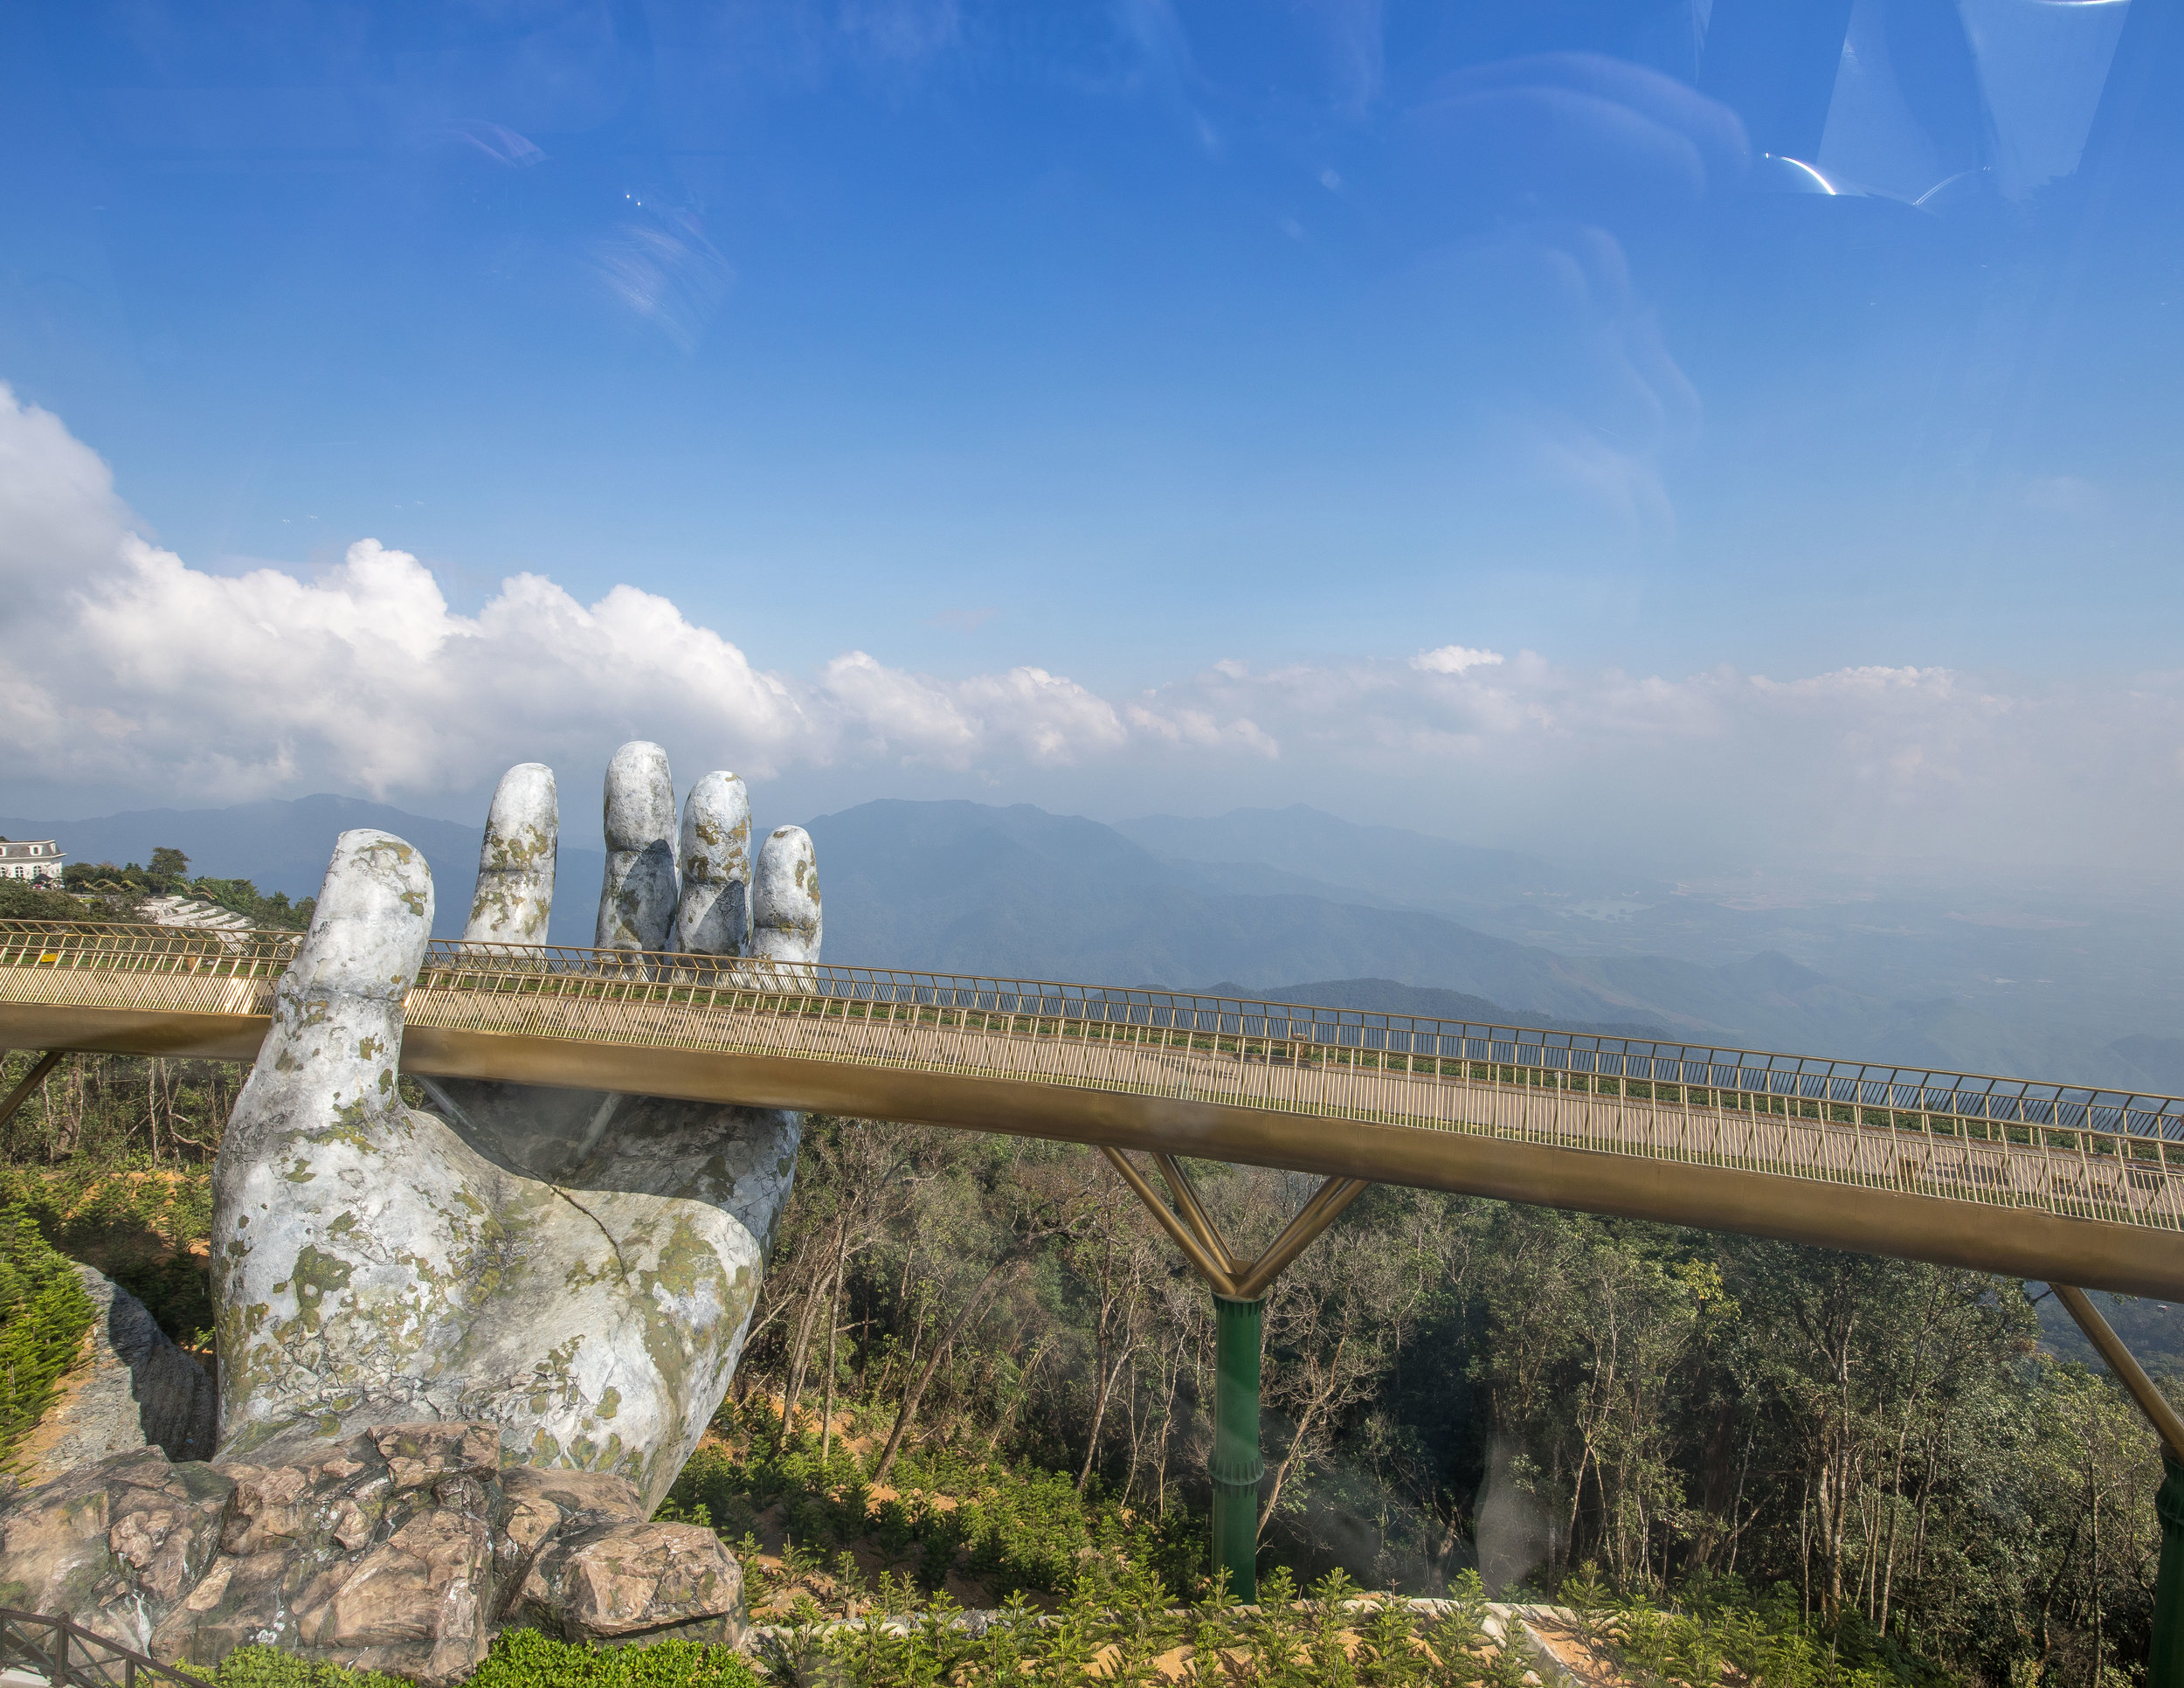 Golden Bridge Ba Na Hills, Da Nang Vietnam